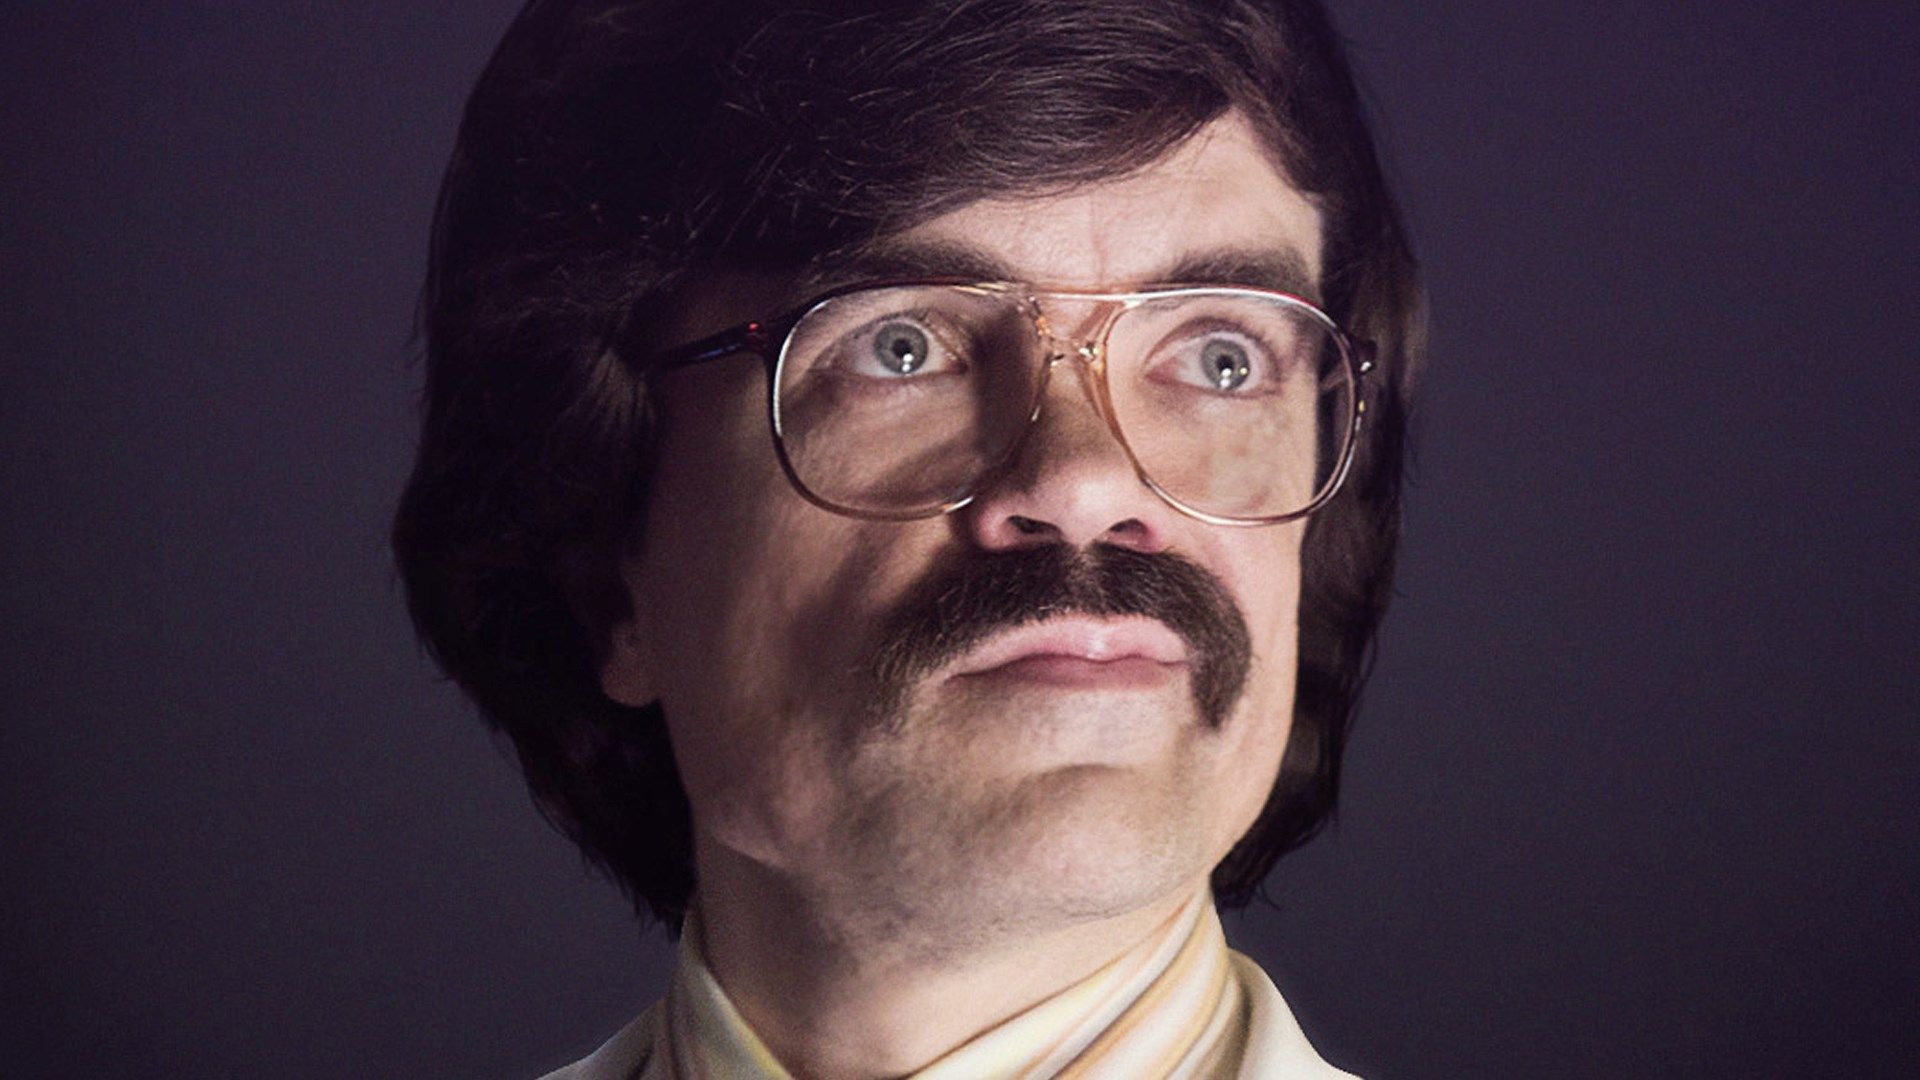 wall paper hd peter dinklage in high res free